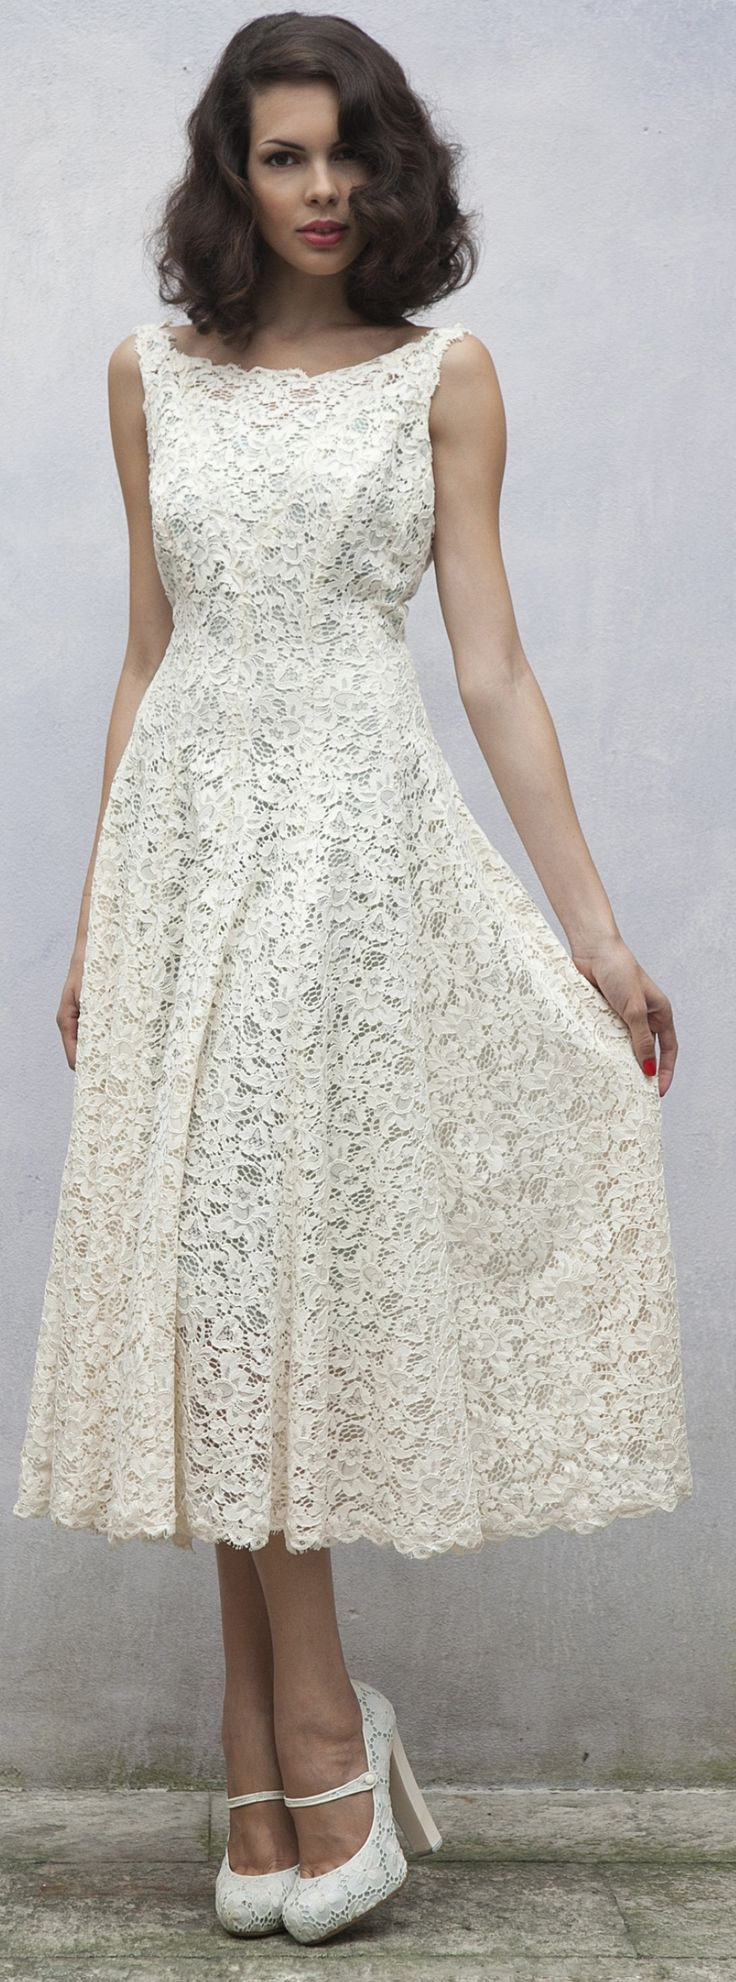 Luisa Beccaria Resort 2014 / Teal length wedding dress / lace wedding dress